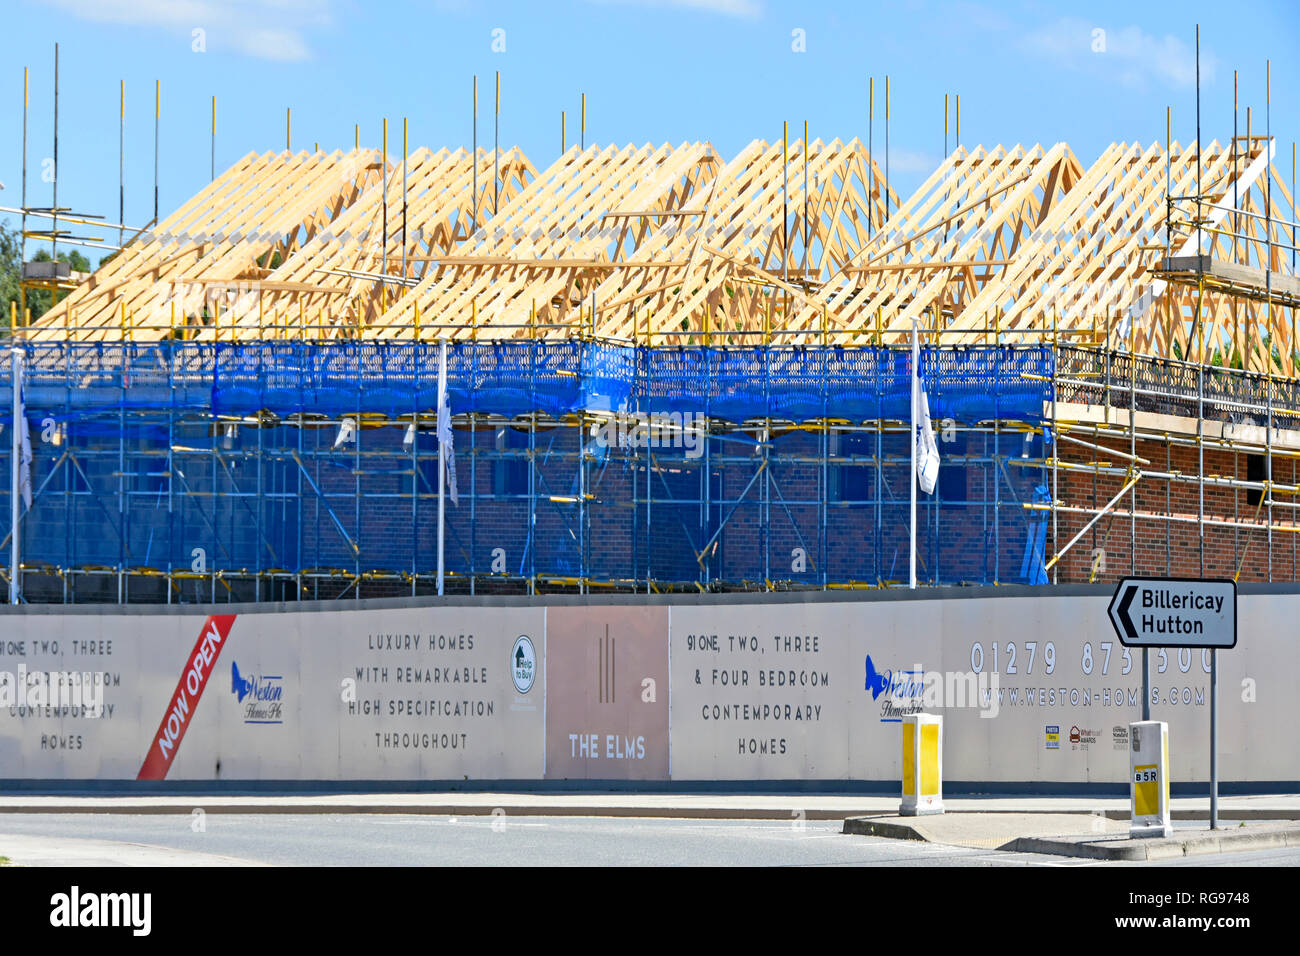 Timber Roof Scaffolding House Development Building Construction Site Of New Homes With Help To Buy Home Logo On Hoarding Brentwood Essex England Uk Stock Photo Alamy